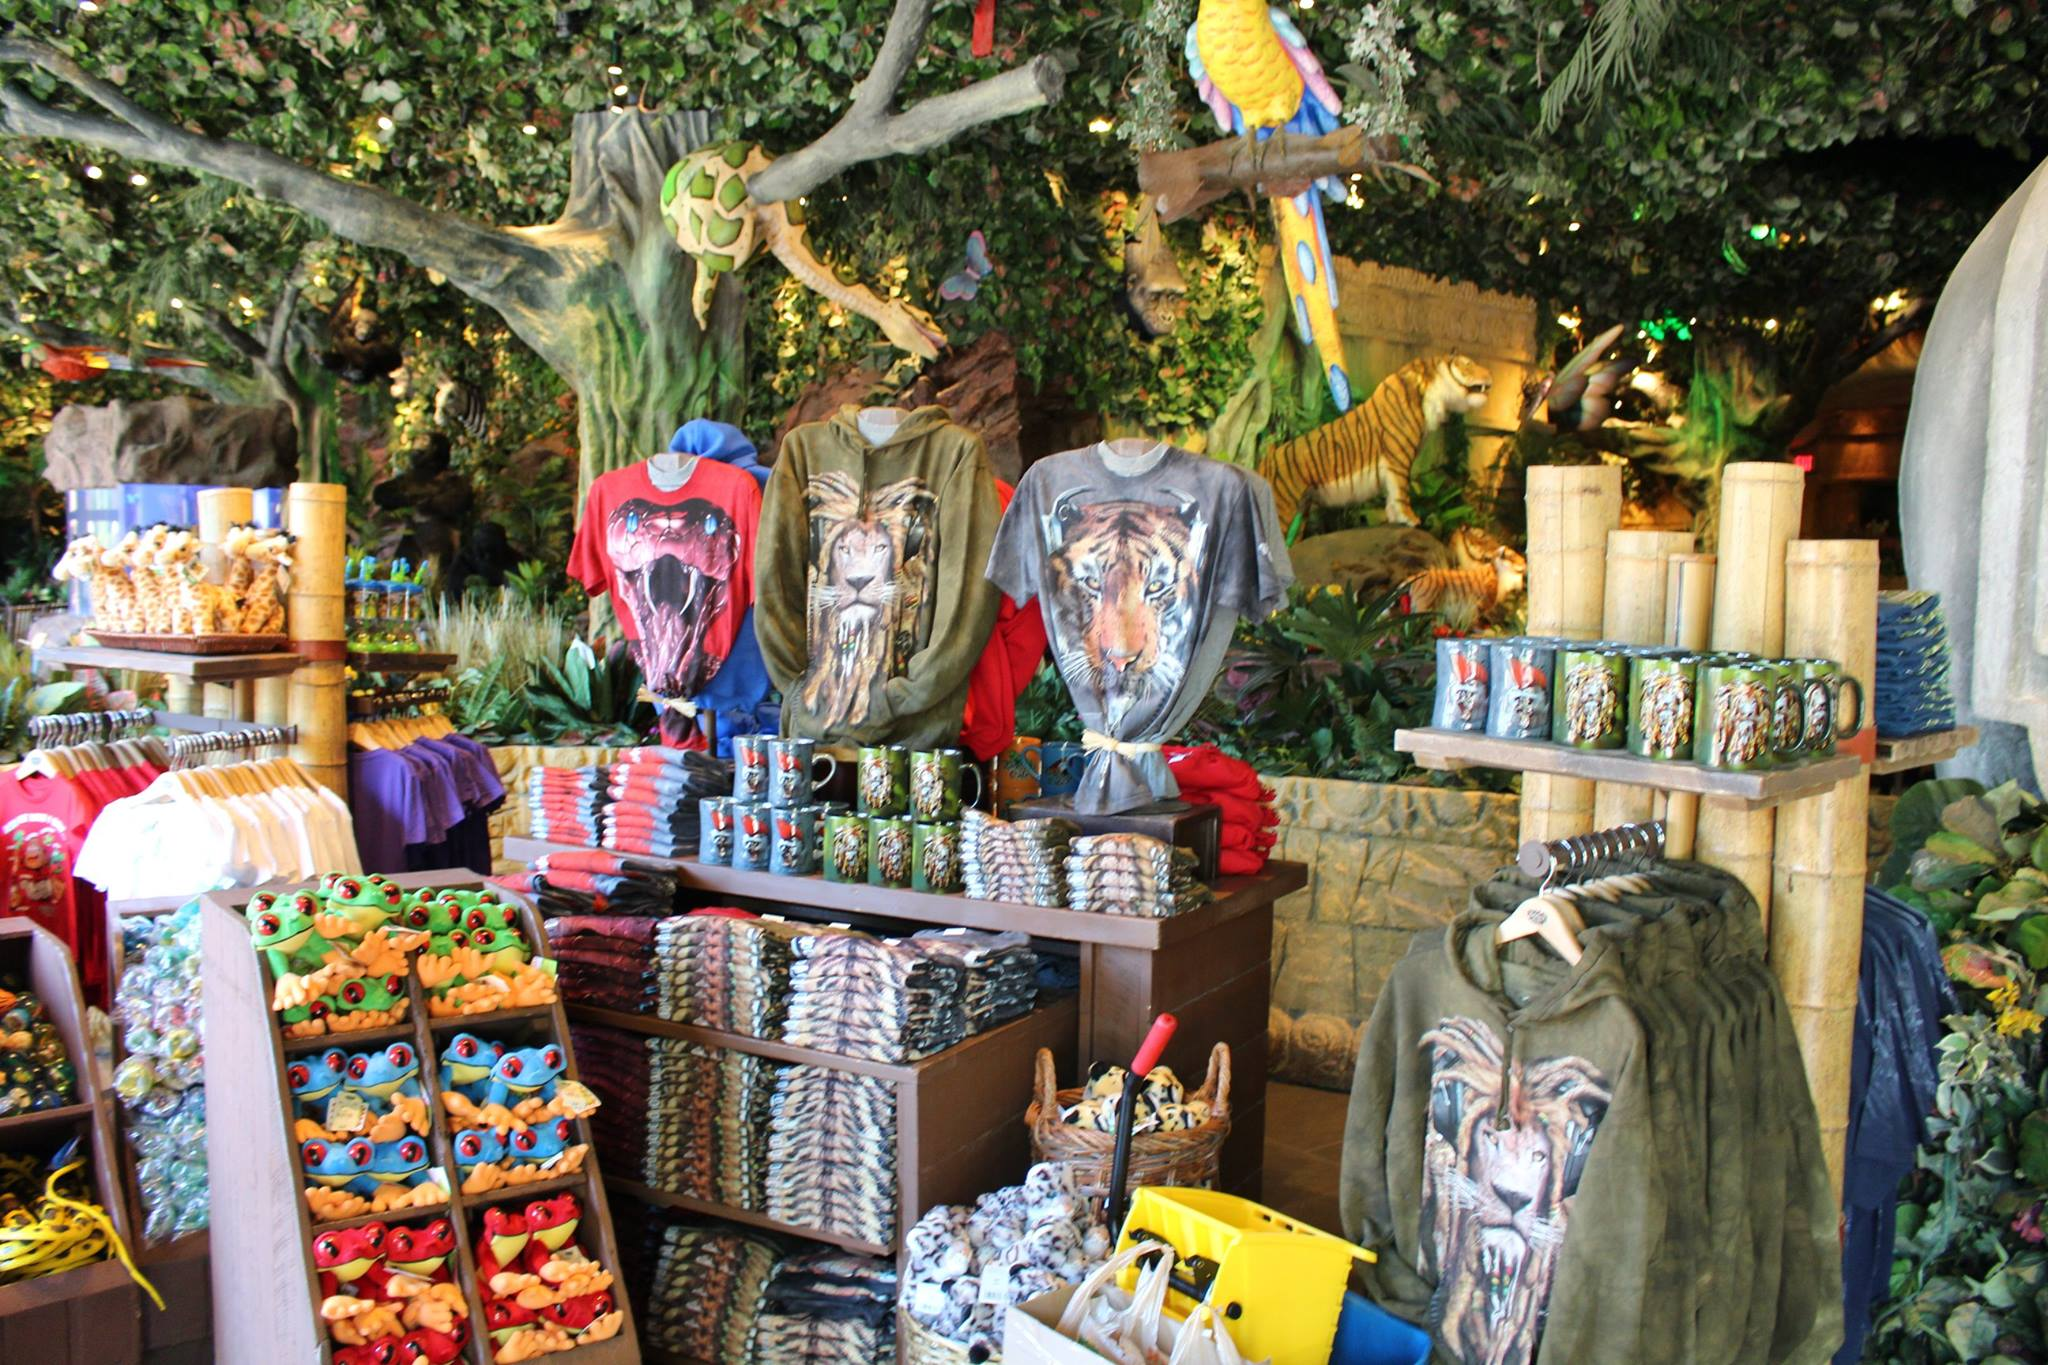 Rainforest Cafe in the Falls now open | The NiagaraHub